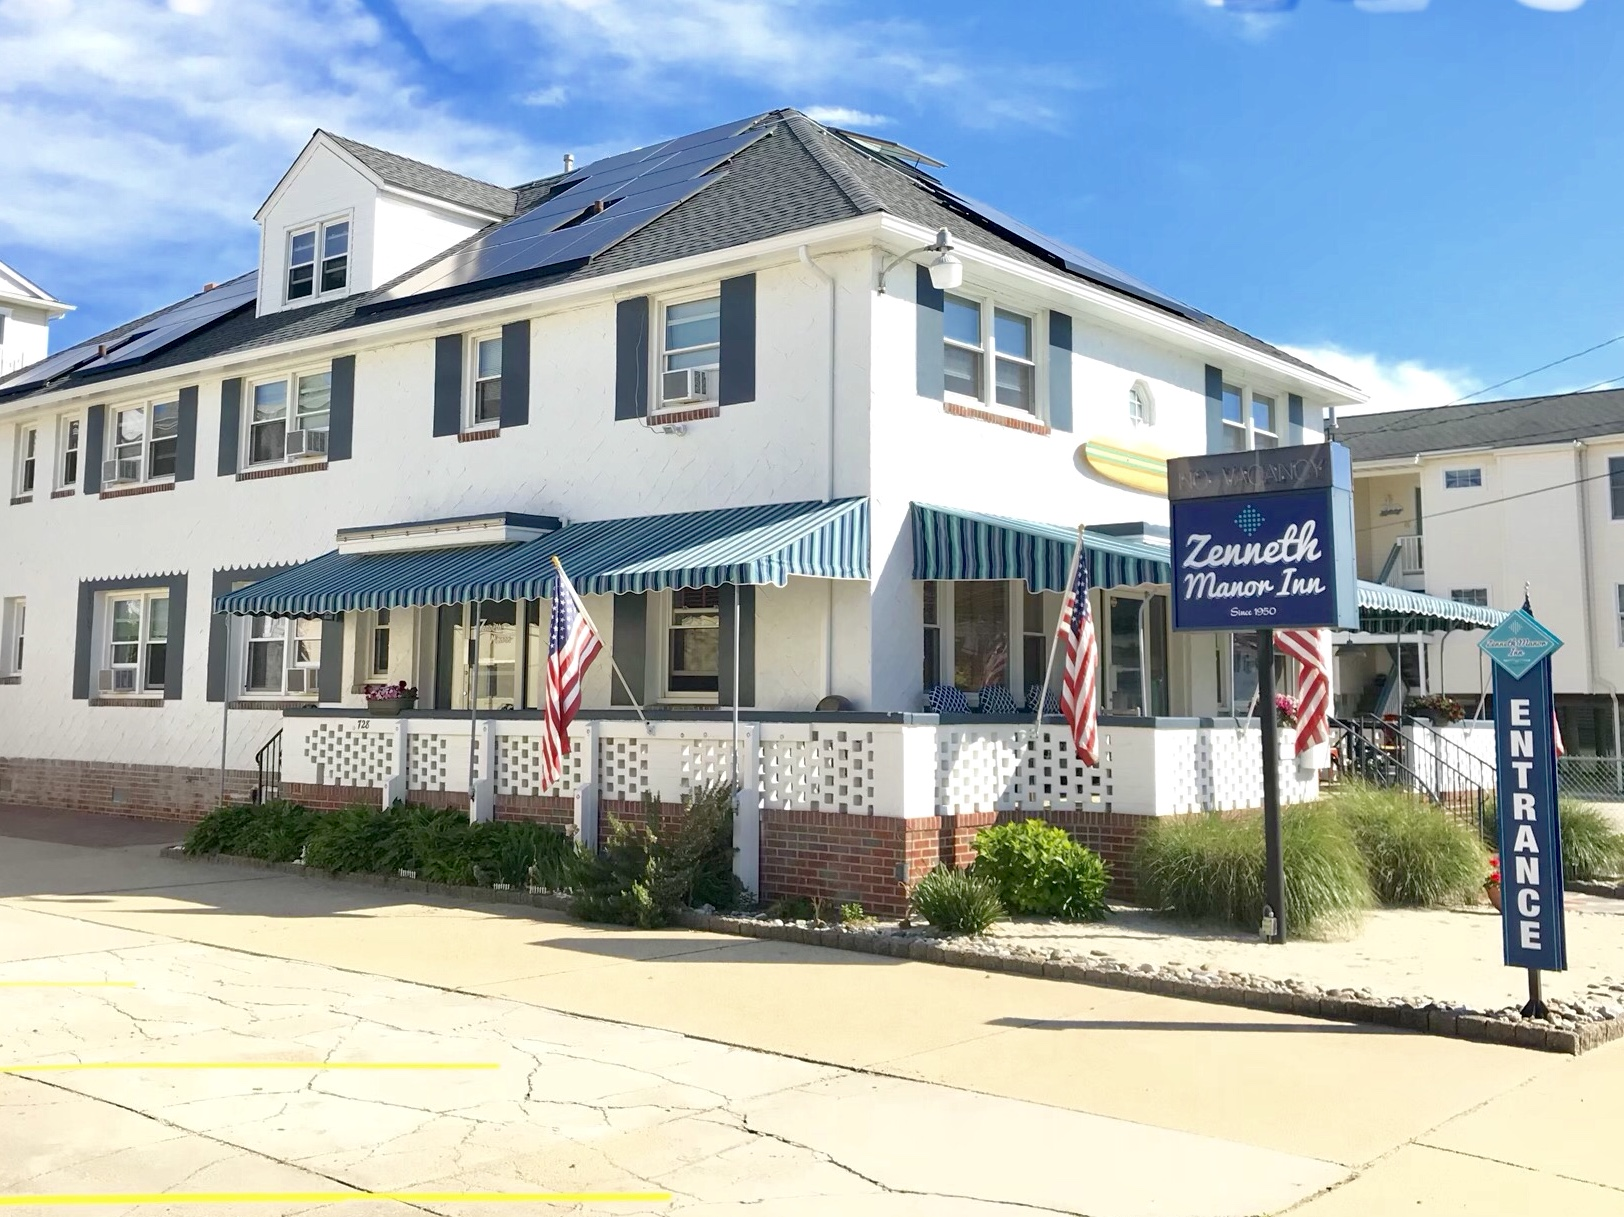 2019 Zenneth Manor Inn